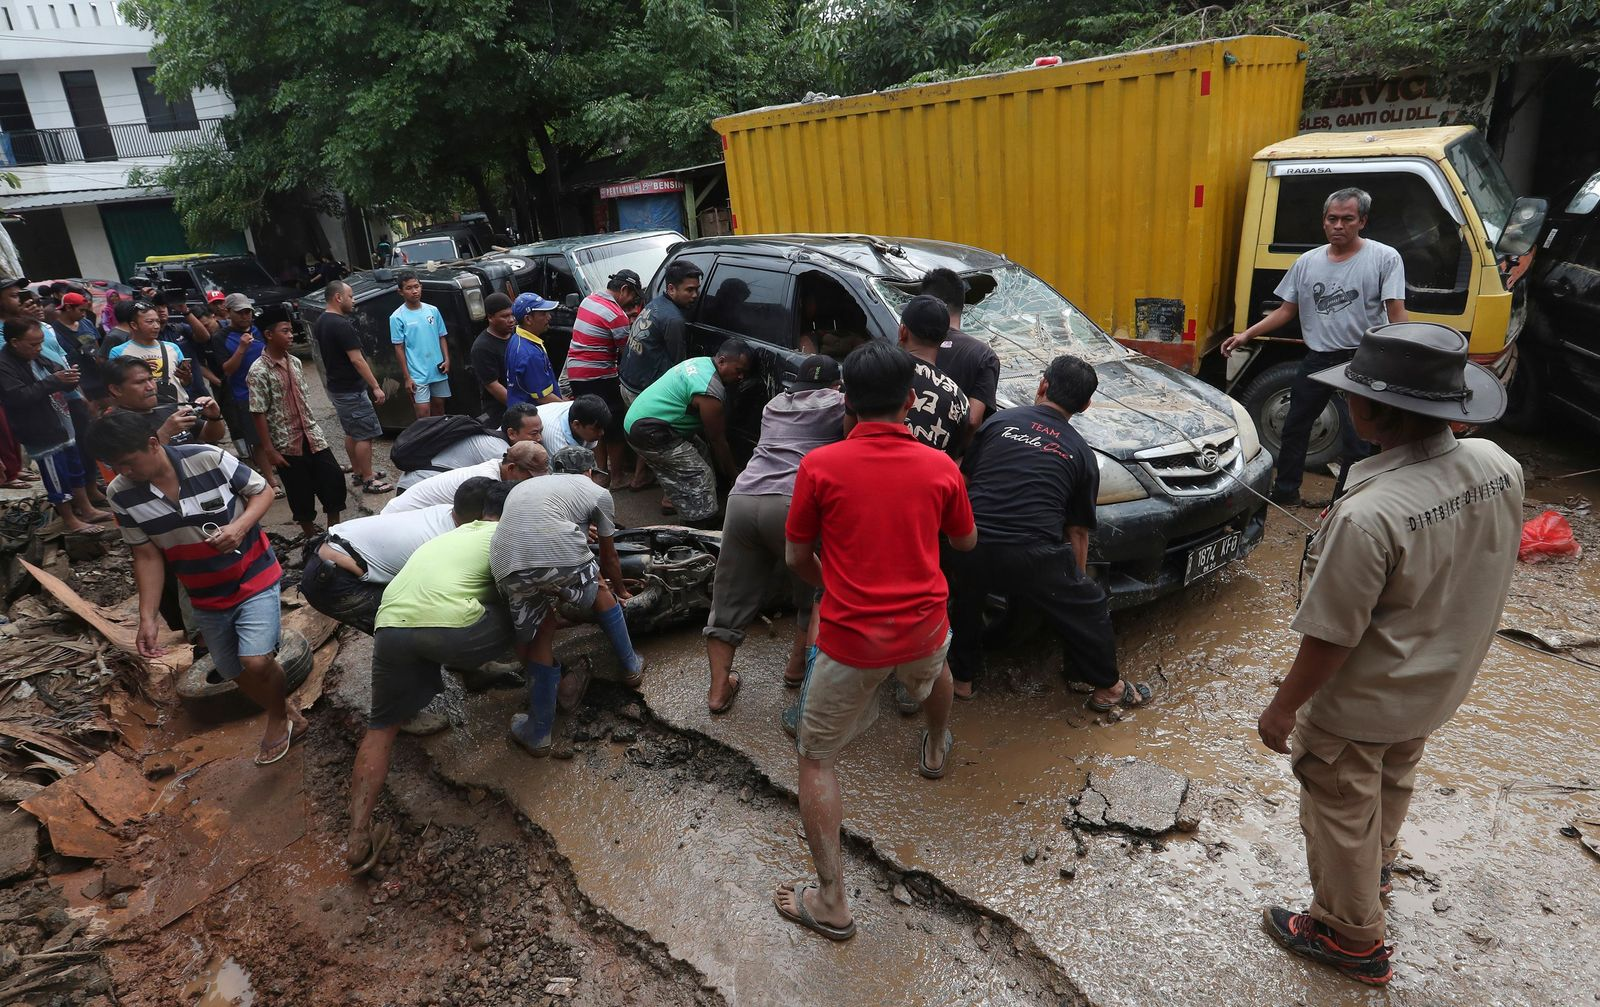 Residents try to move the wreckage of cars that were swept away by flood in Bekasi, West Java, Indonesia, Friday, Jan. 3, 2020. (AP Photo/Achmad Ibrahim)